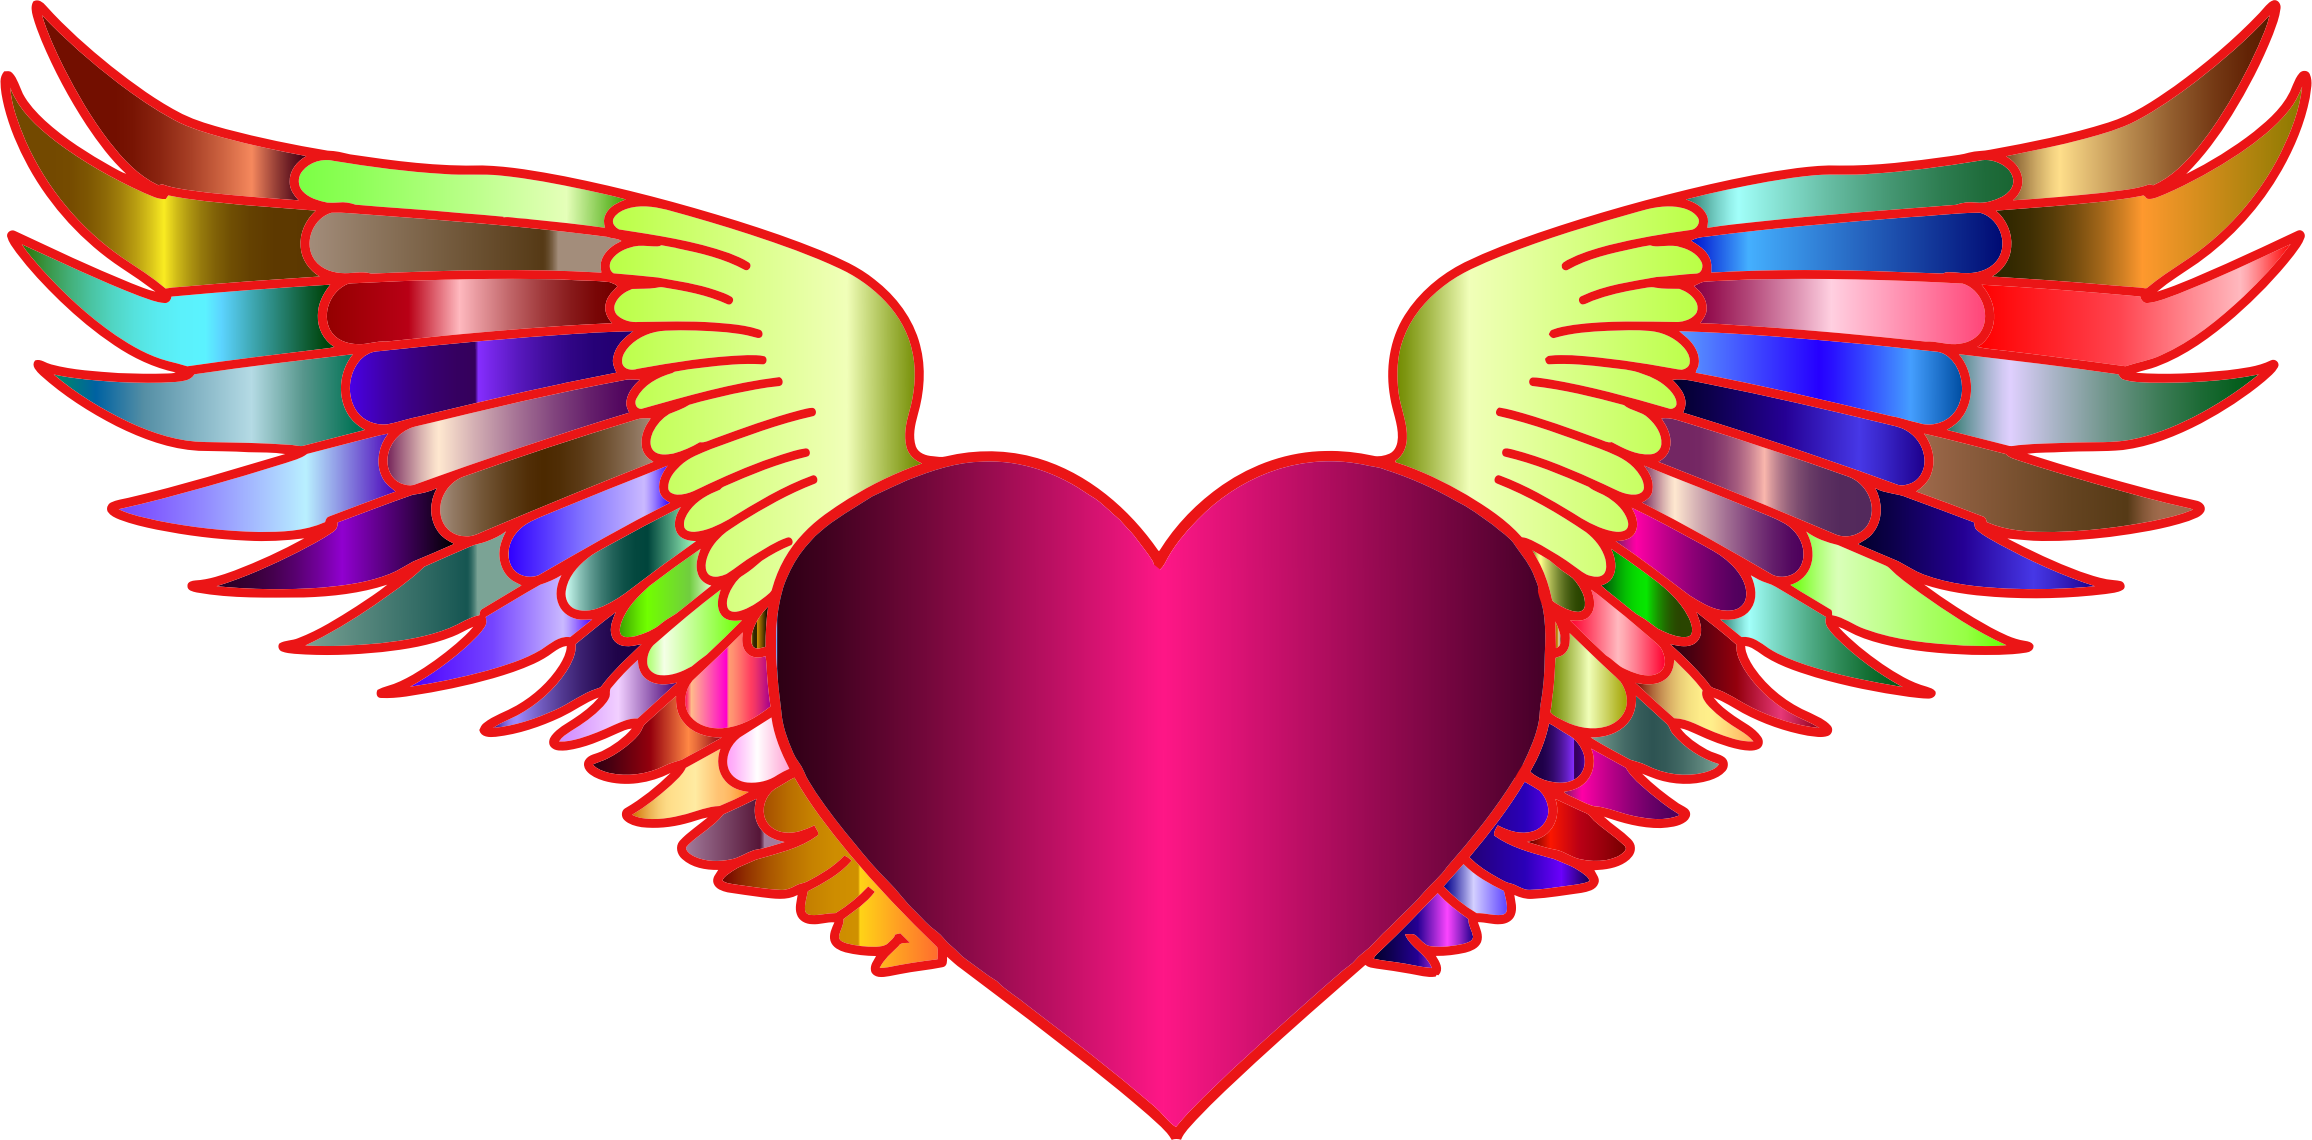 Prismatic Flying Heart 2 by GDJ